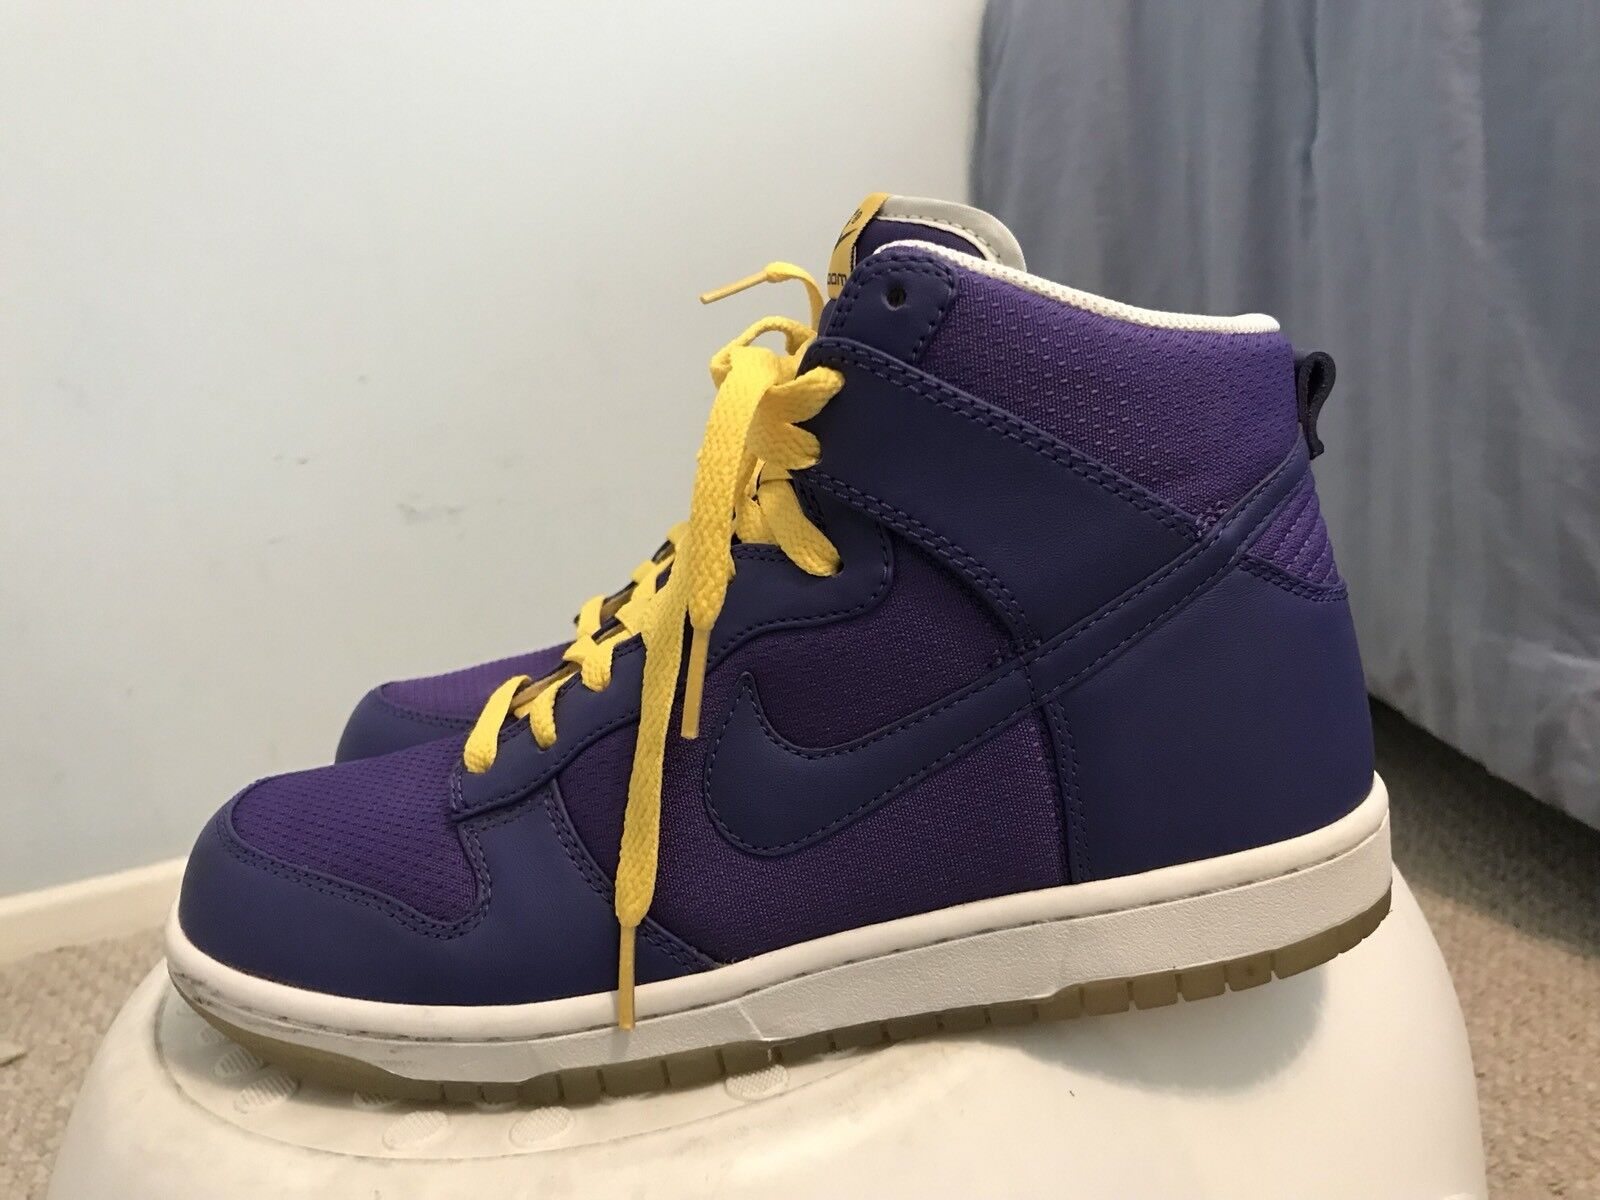 Nike Dunk High Lakers Sz 8 NDS